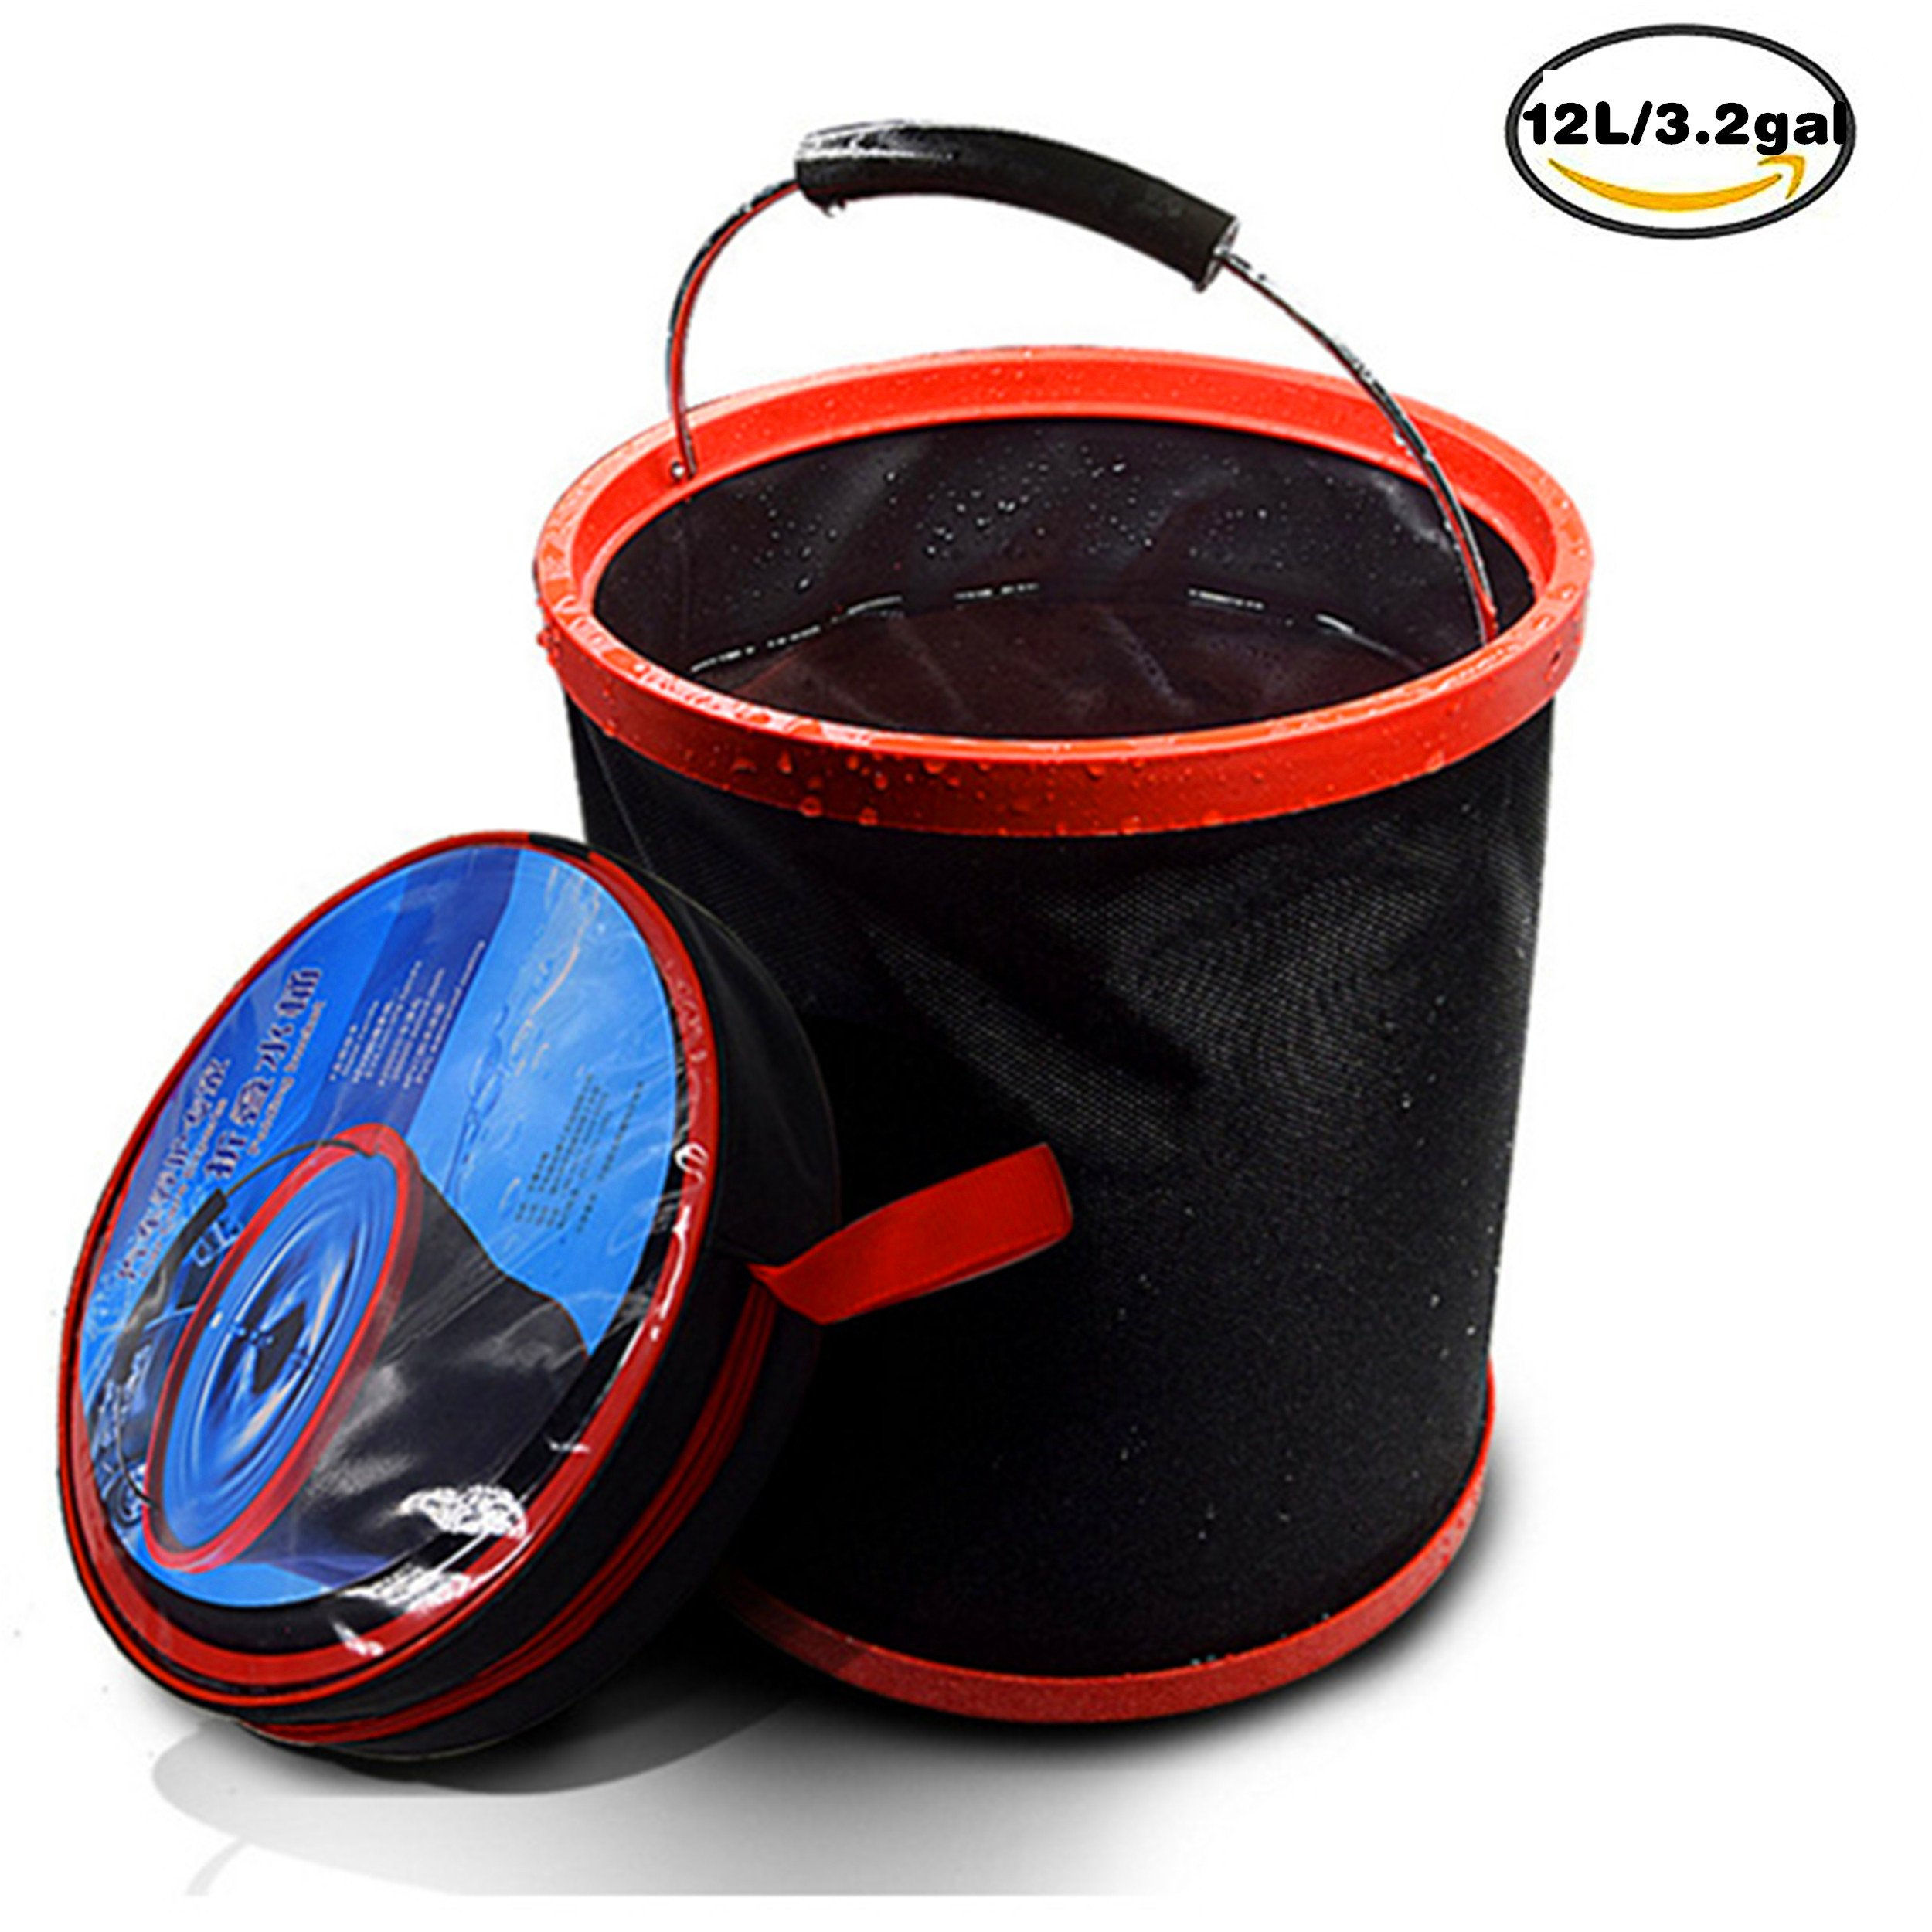 KK5 Water Bucket - 12L Collapsible Camping Water Barrel | Folding Portable Large Tub | Car Cleaning Wash Bucket Pail | For Outdoor Camping, Hiking, Fishing, Washing & Gardening